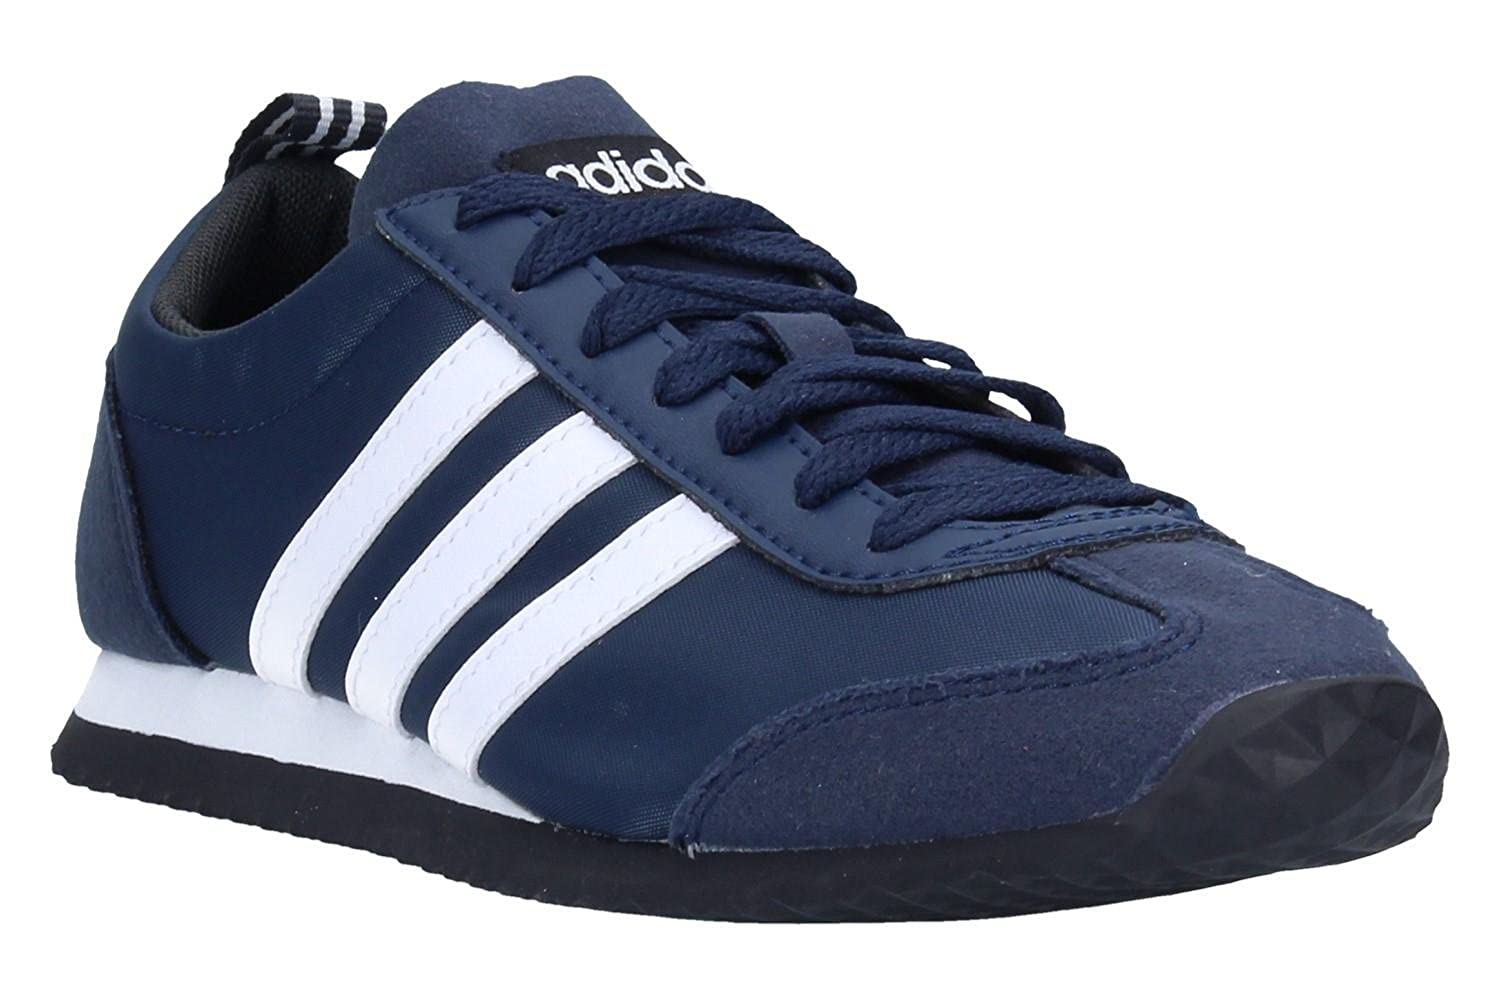 adidas Vs Jog, Sneakers Basses Homme DB0463